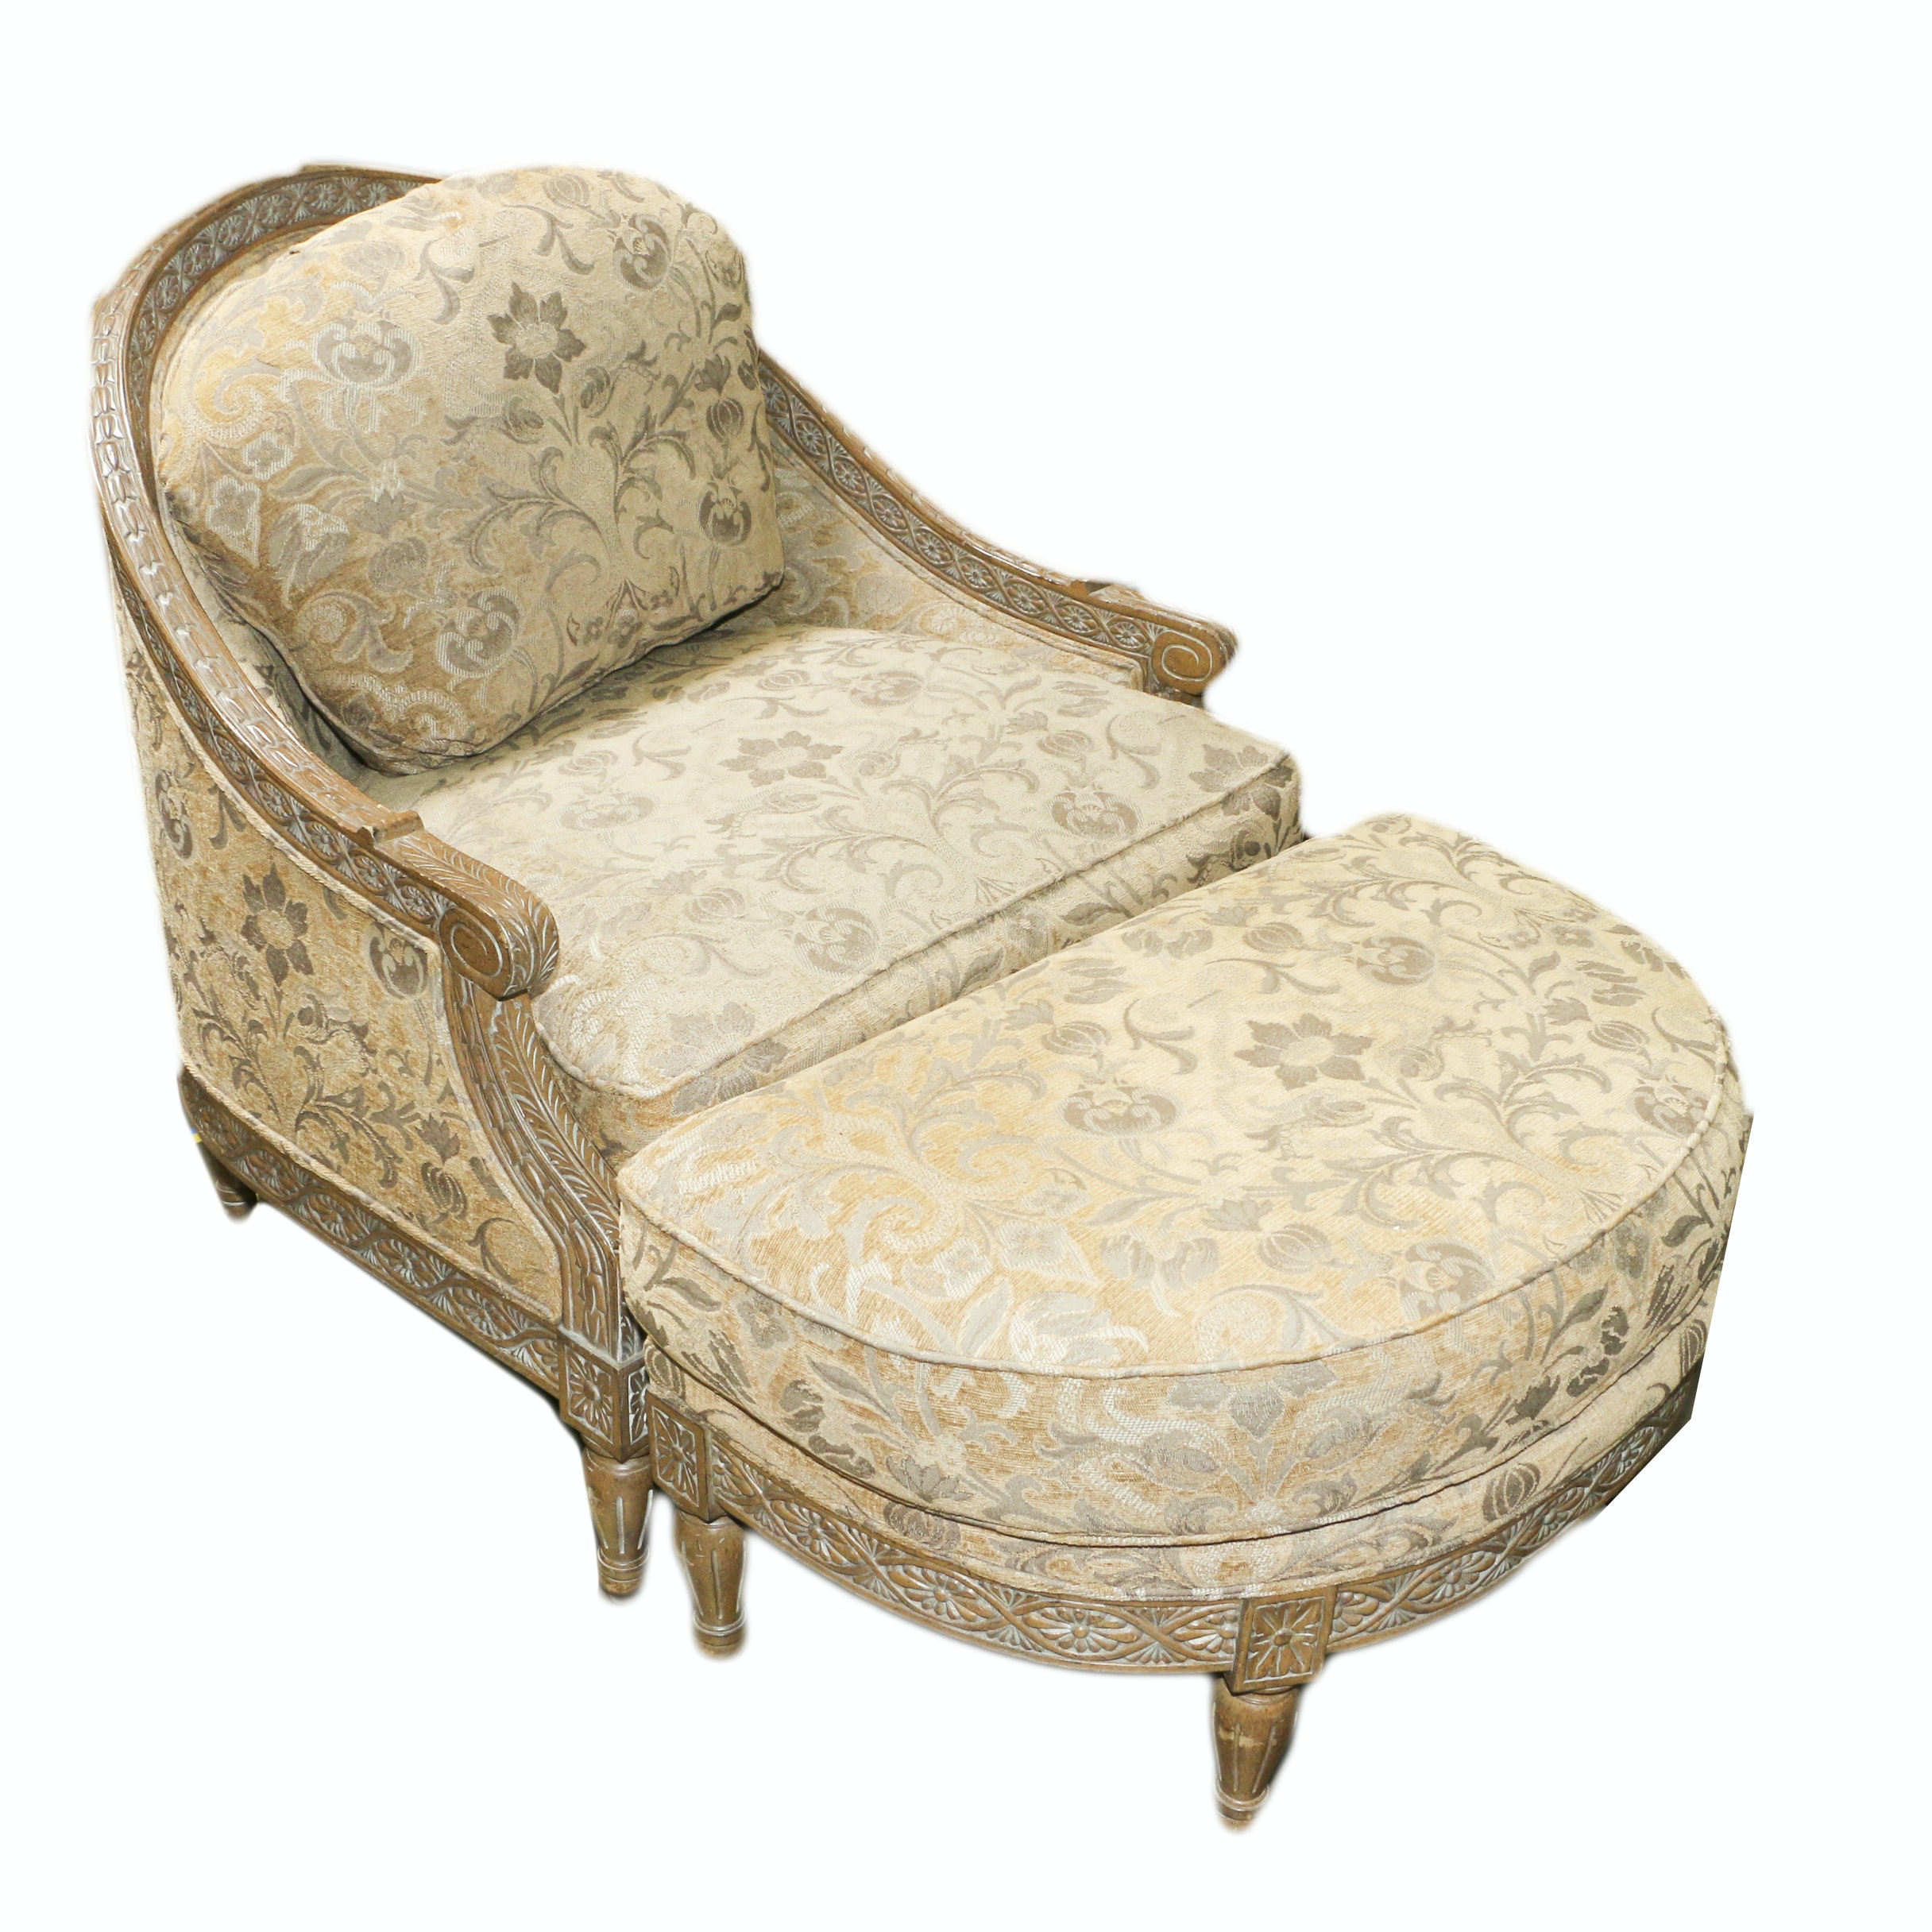 Louis XVI Style Carved Wood Frame Upholstered Armchair and Ottoman, 21st Century